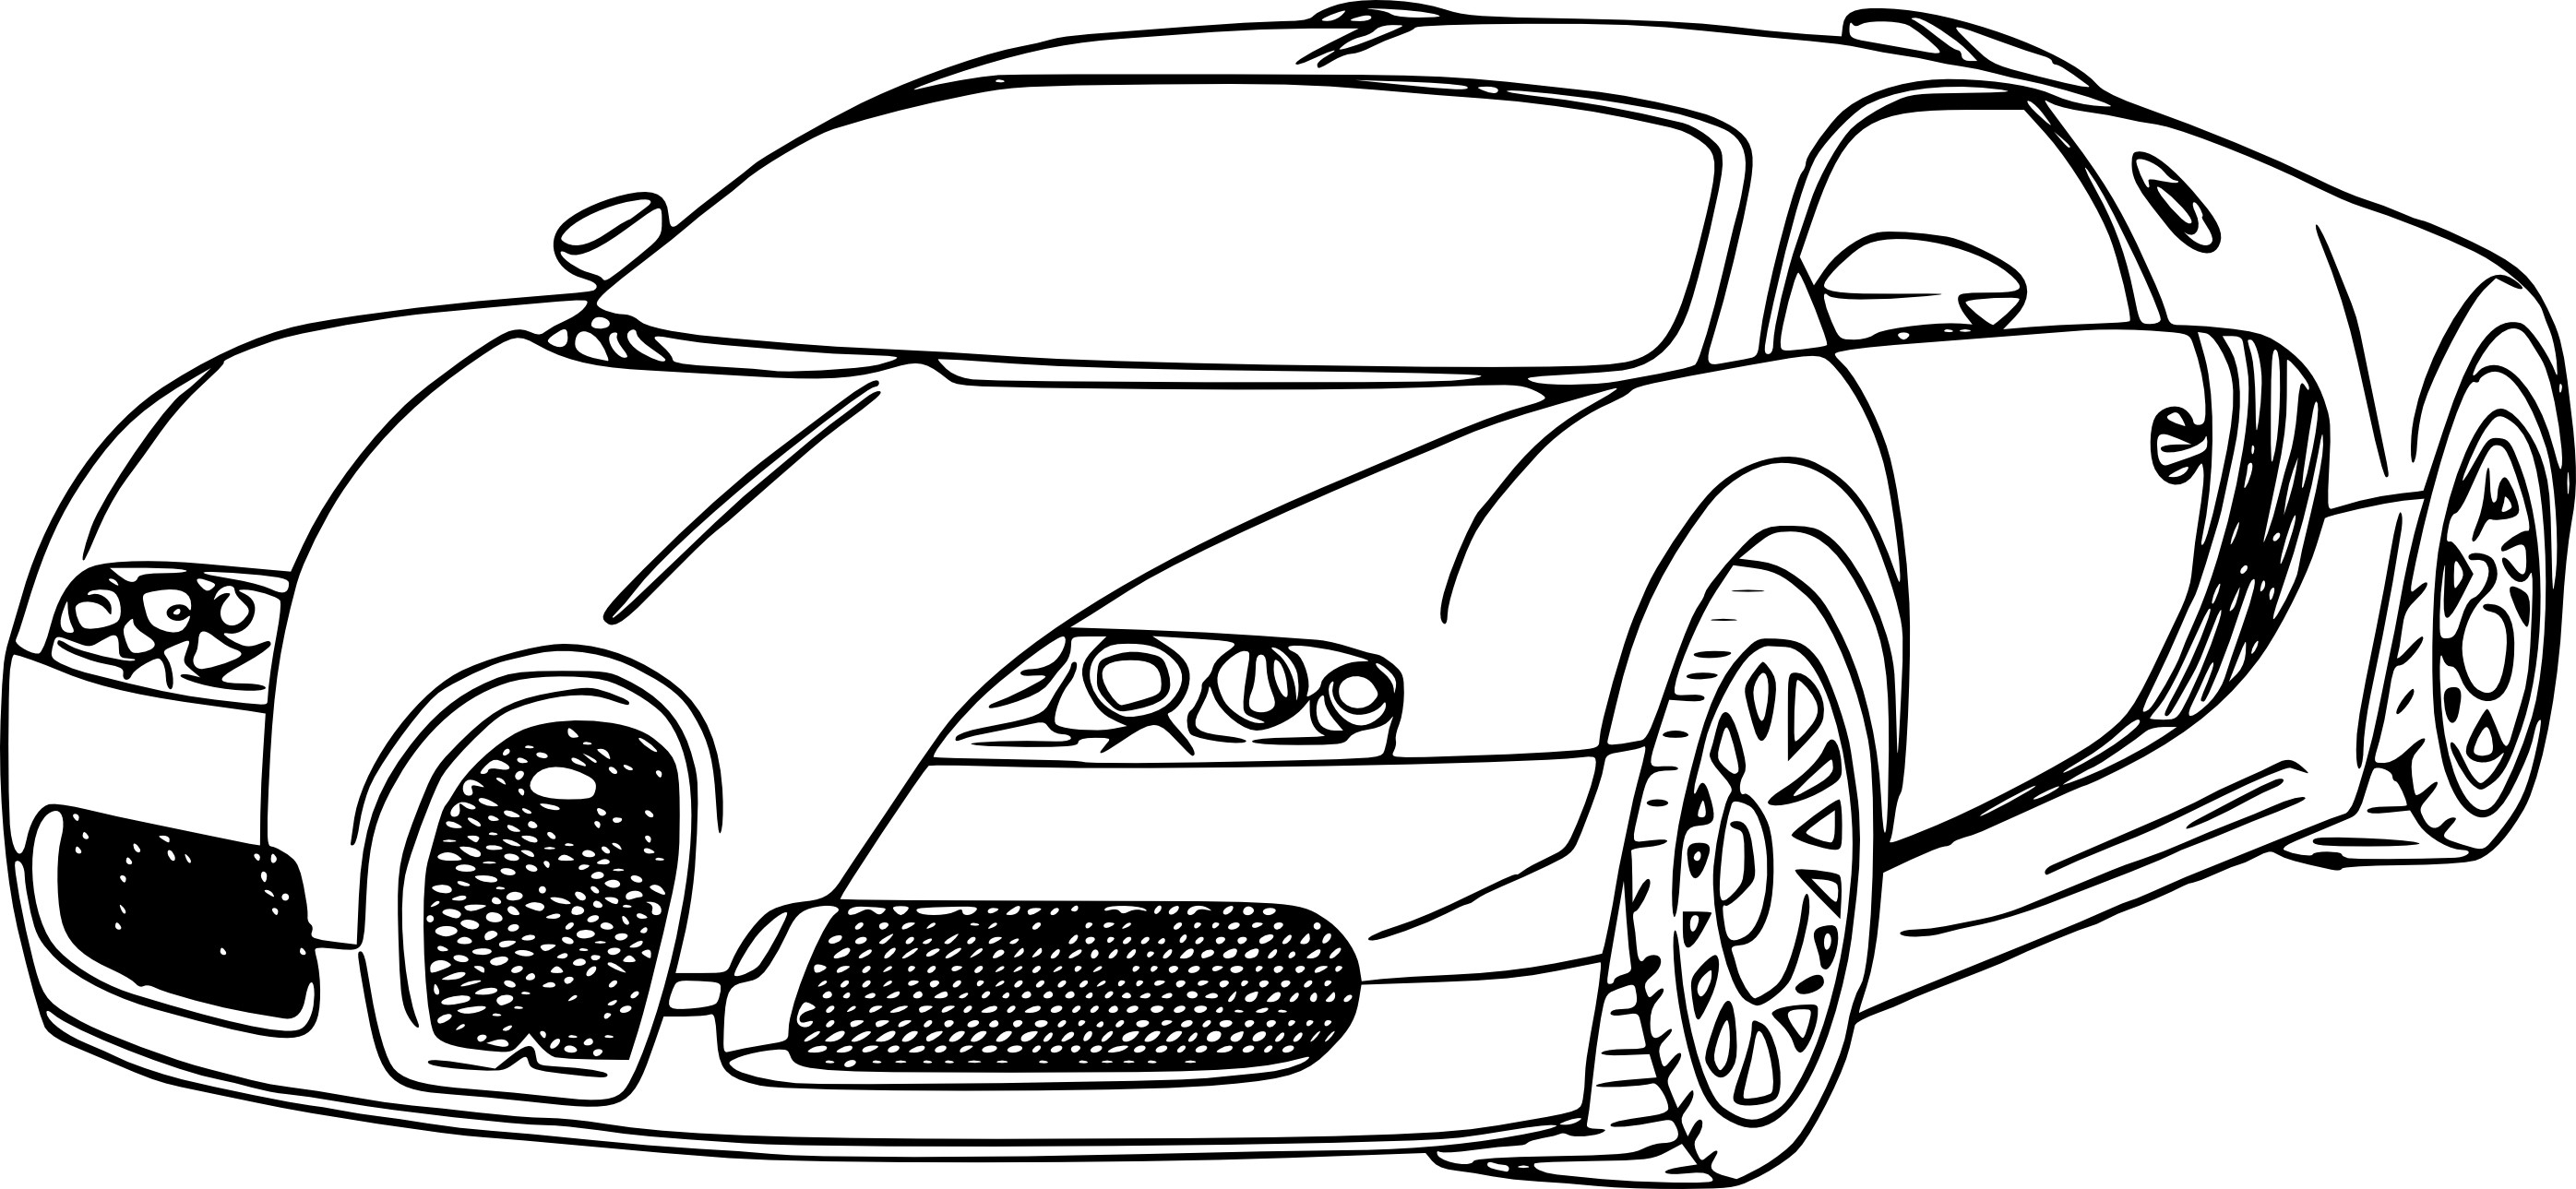 Printable Bugatti Coloring Pages For Kids | 1289x2792